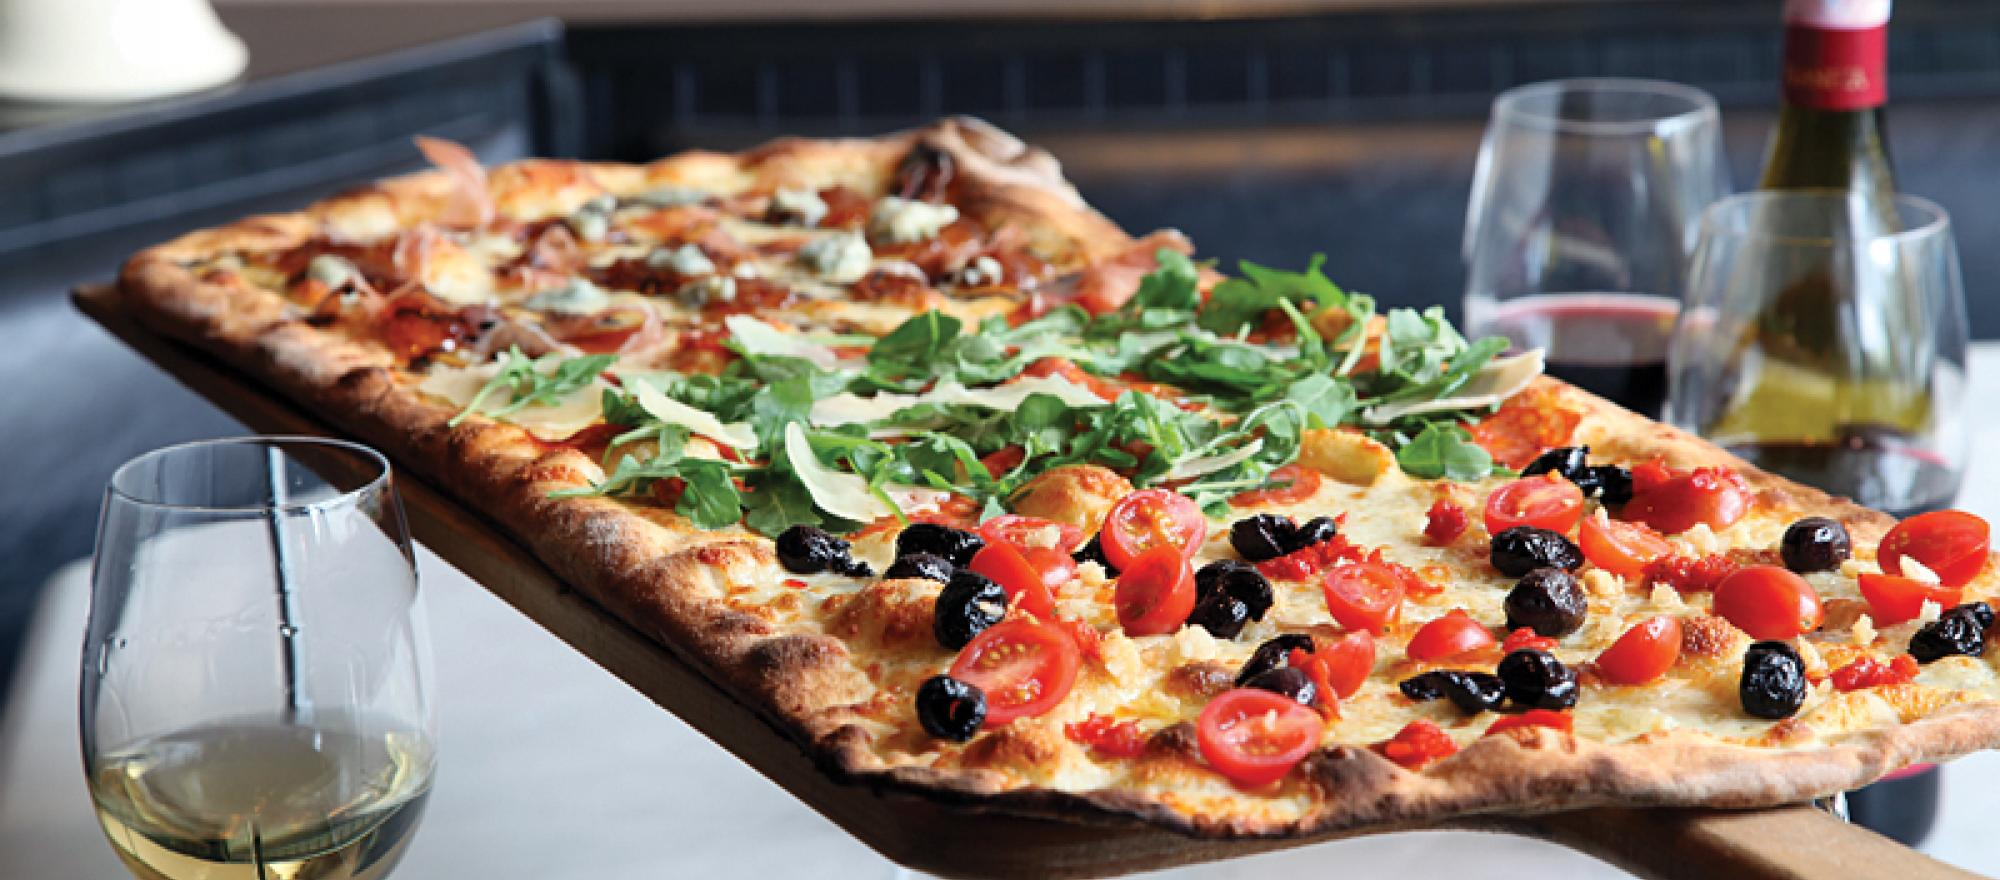 Tony Gemignani's award-winning pizza